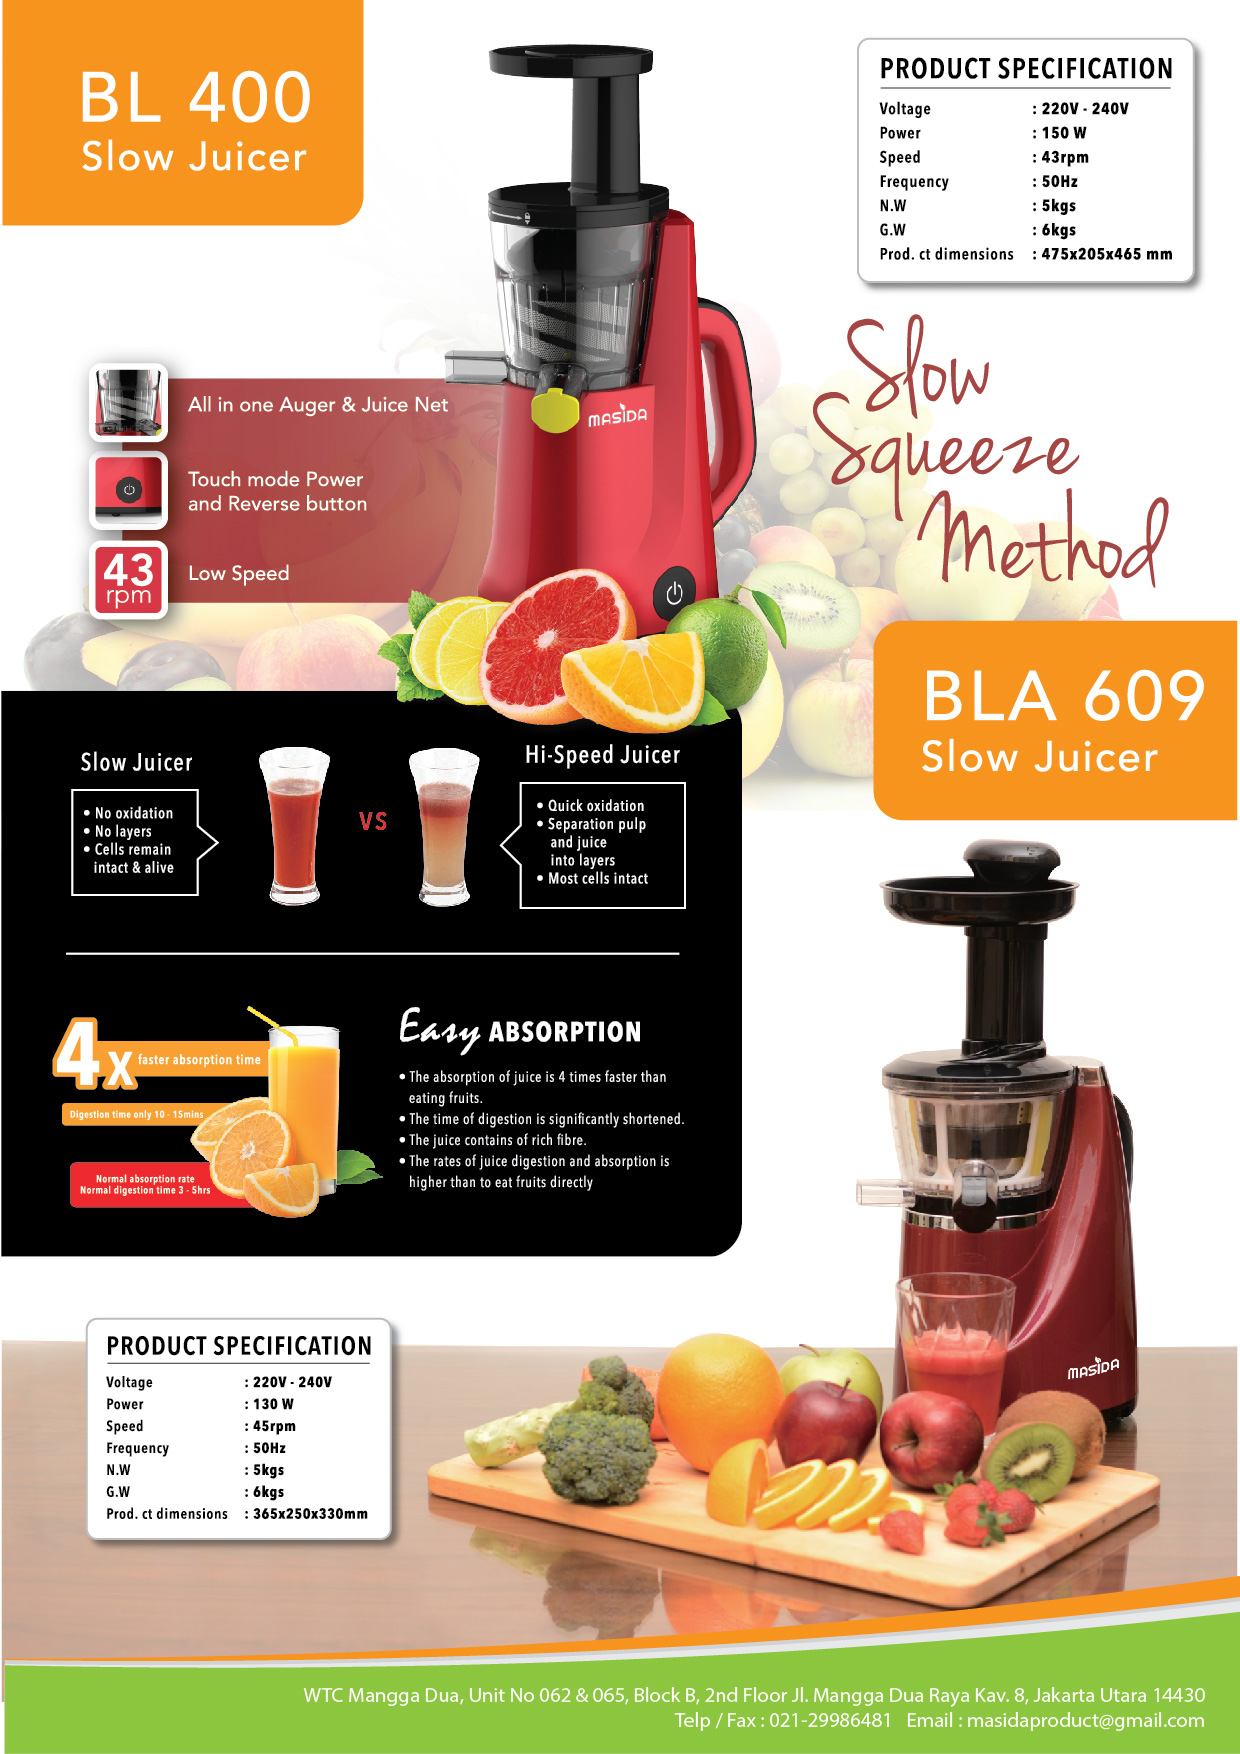 Masida Slow Juicer Pengejus Buah Bla 609 Fruit Extractor 45 Rpm Philips Hr1889 Plus Voucher Map Senilai 200000 Cold Press